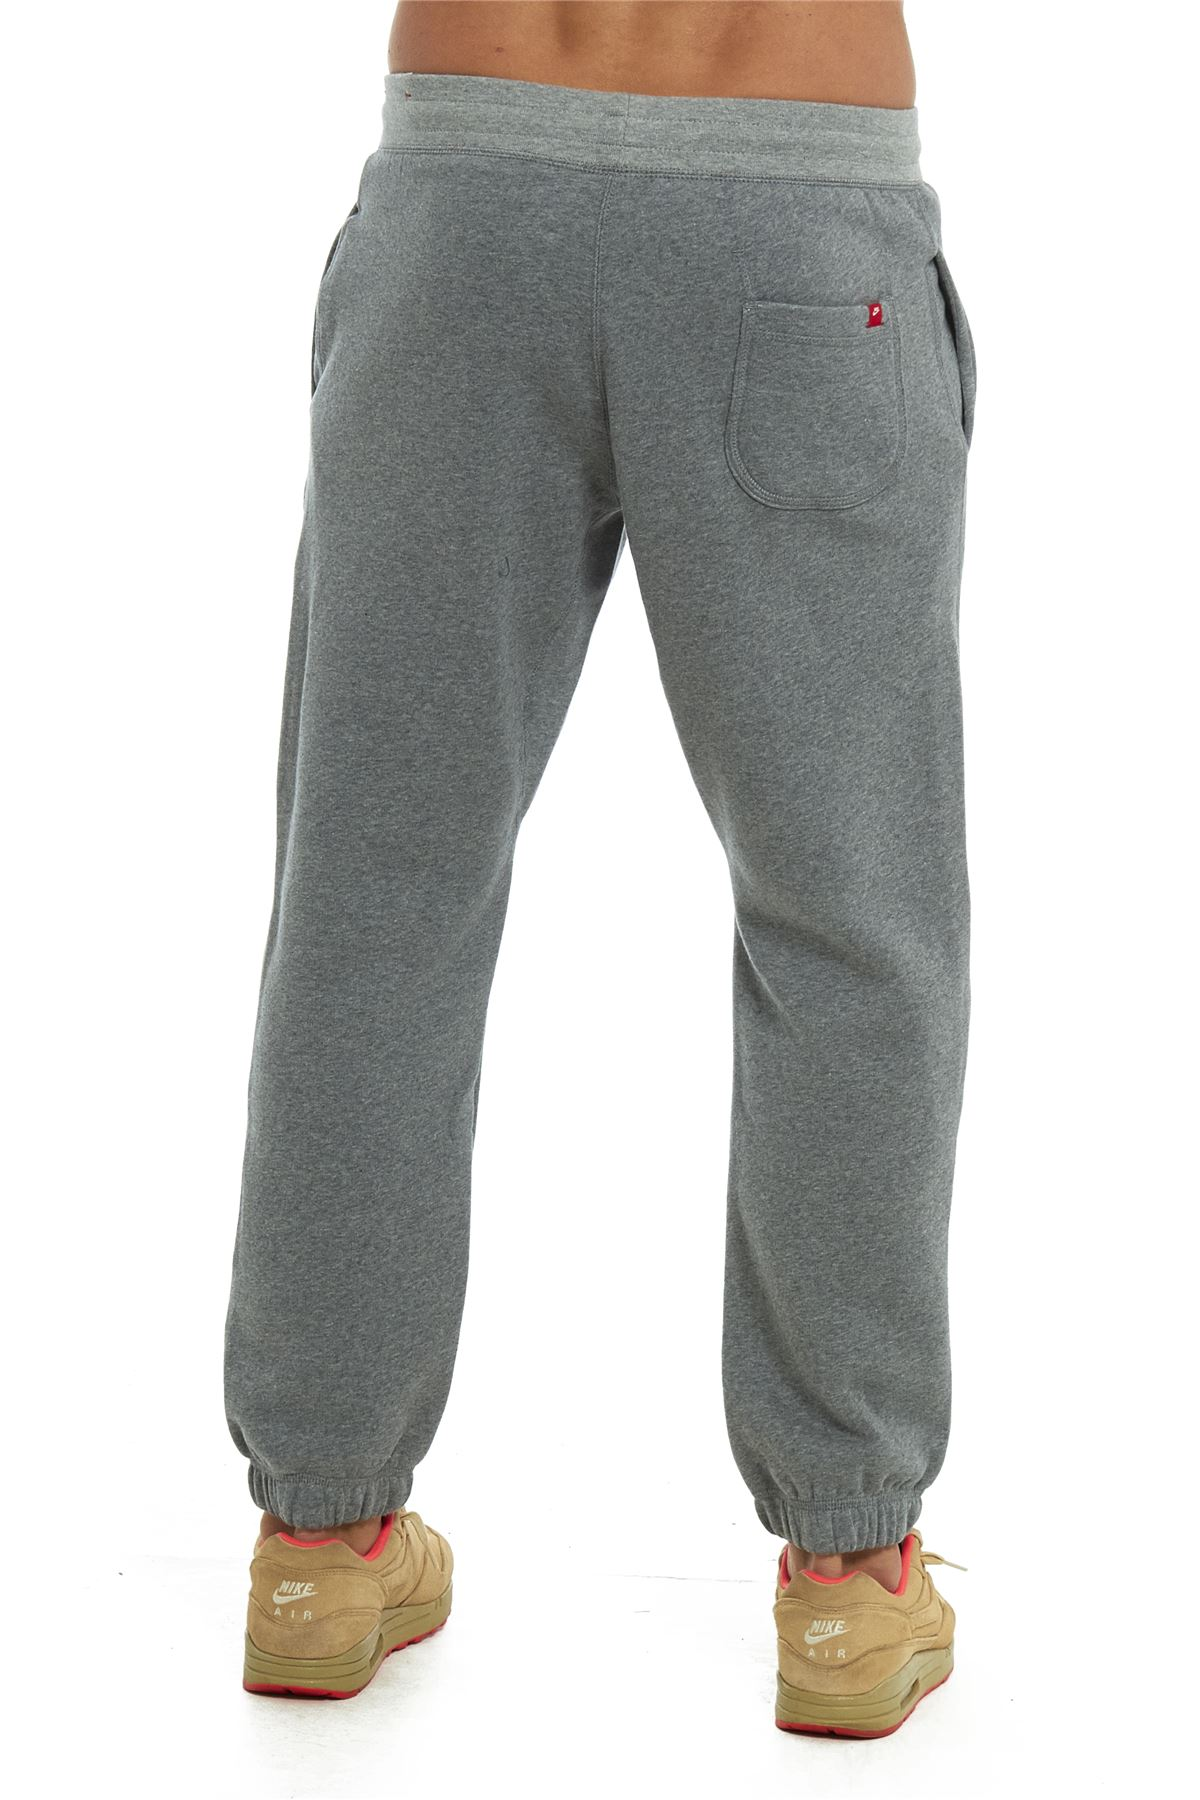 These joggers are a bit polished looking for a jogger, not as much as the polyester joggers, but they look very neat for a jogger pant. They pair well with sneakers and a tee shirt of course, but can easily be paired with a flat shoe and casual sweater and off you go.